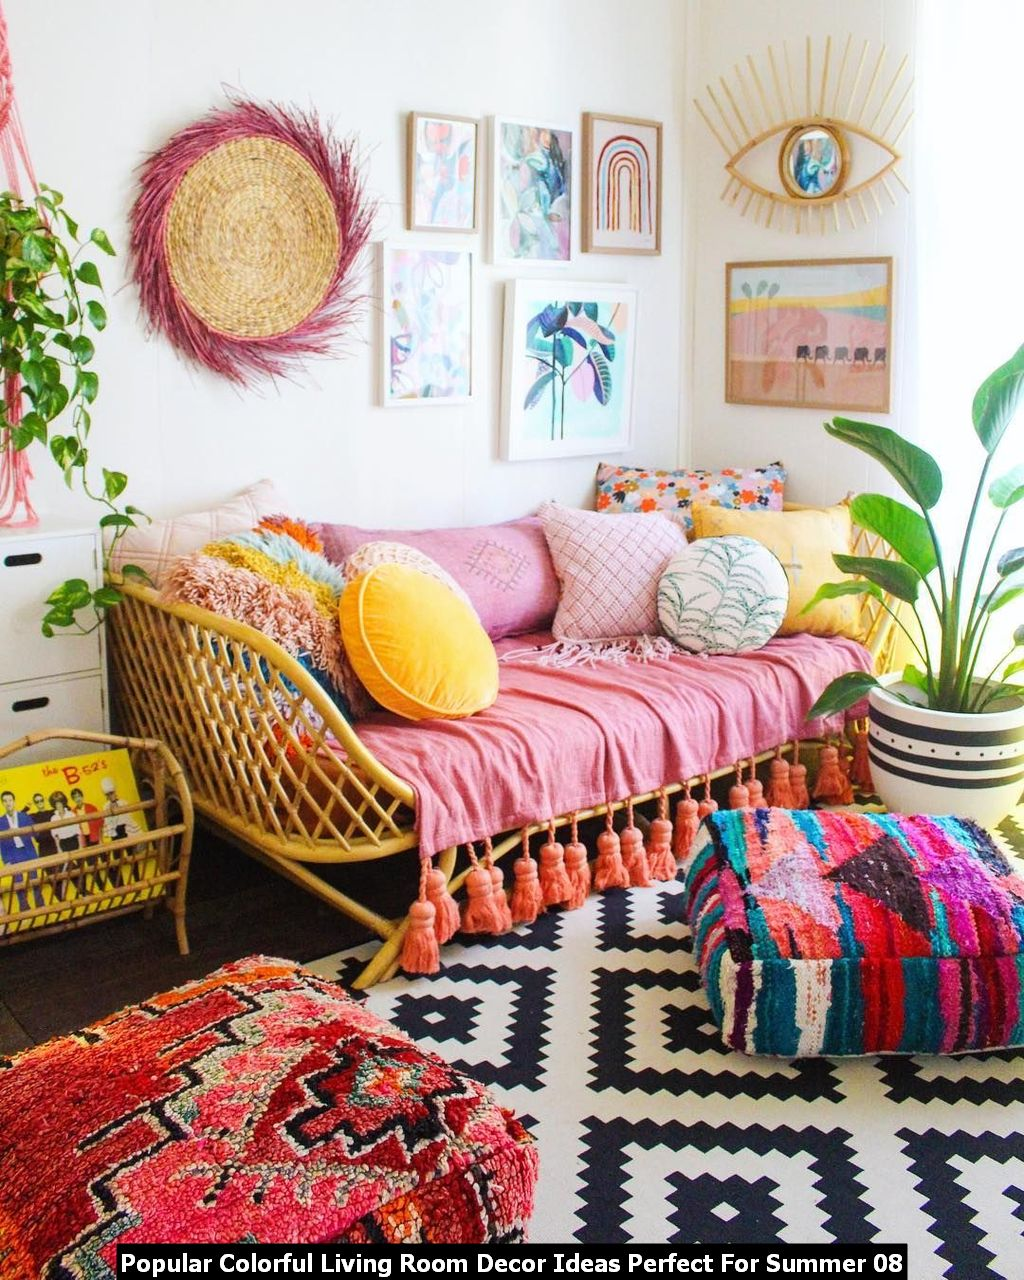 Popular Colorful Living Room Decor Ideas Perfect For Summer 08